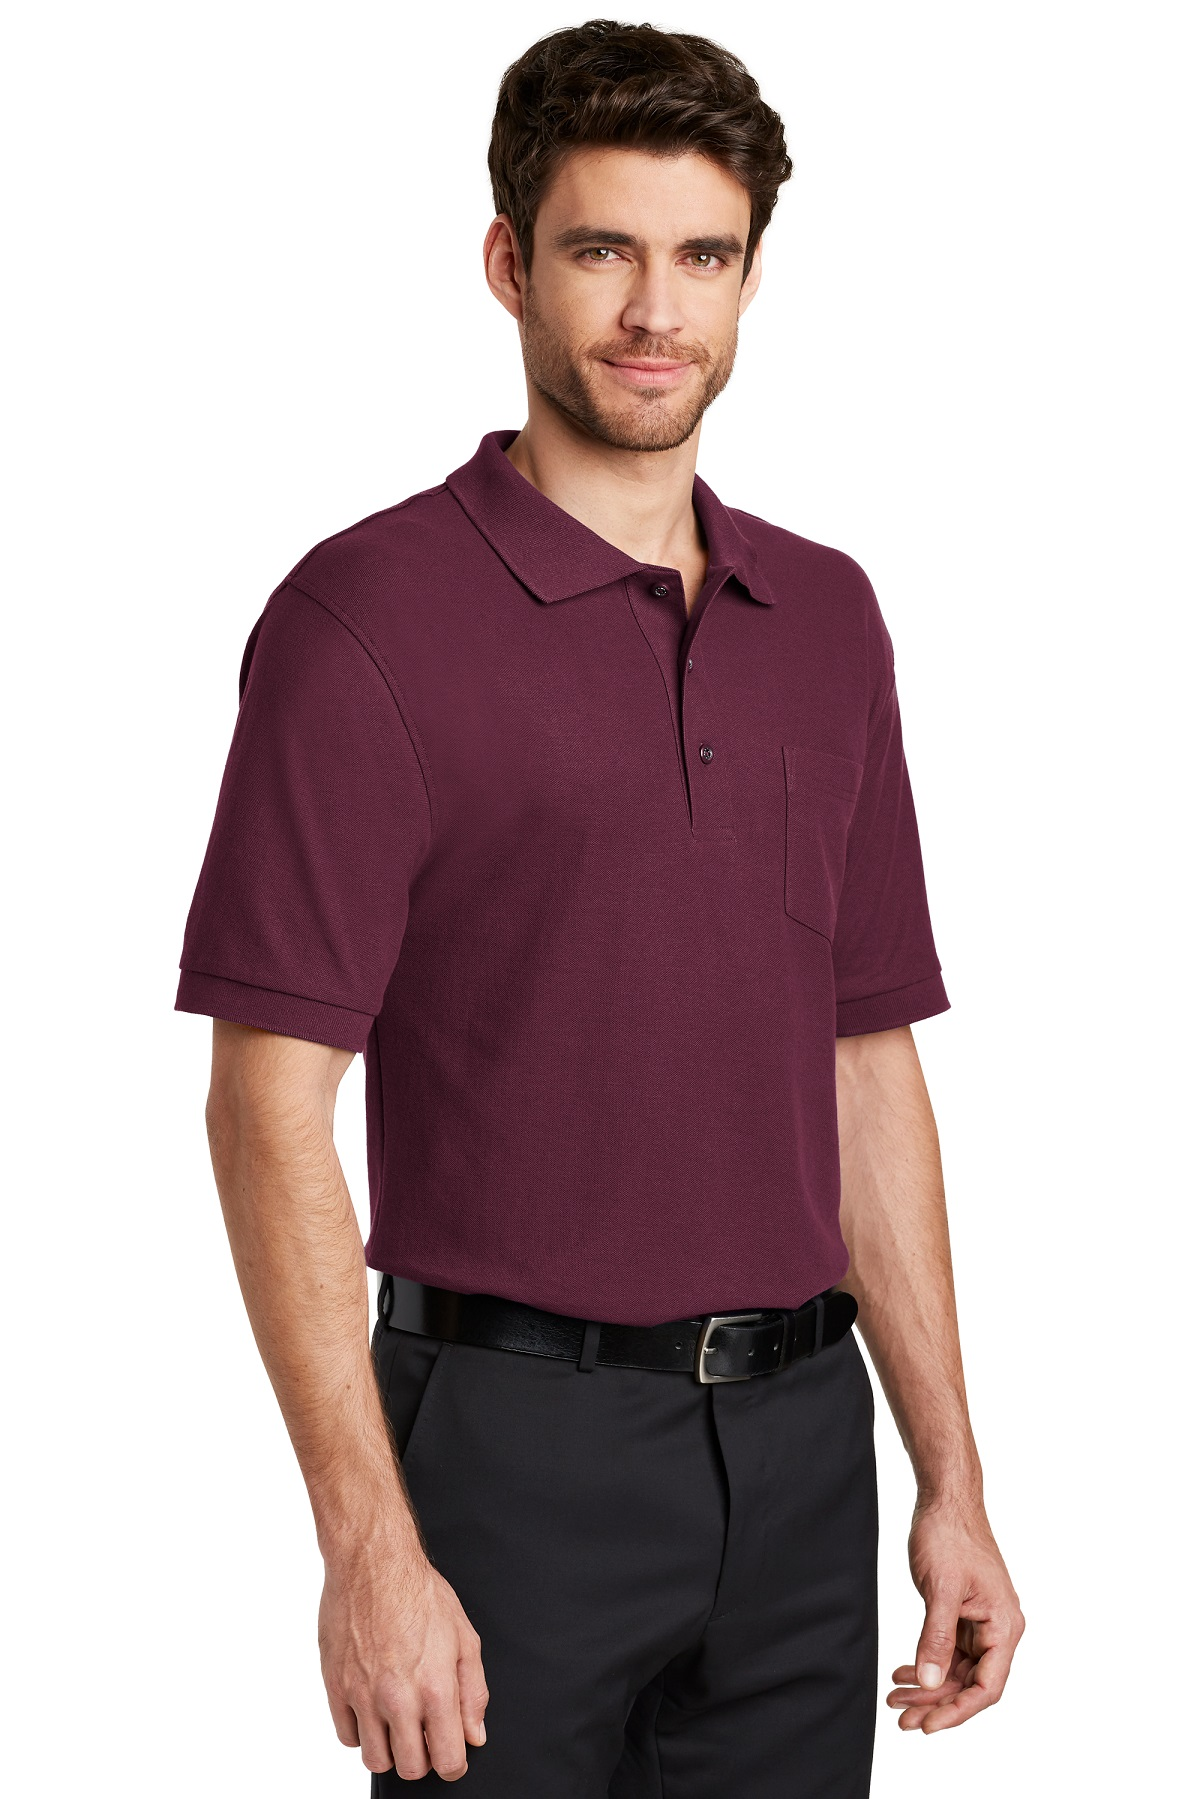 Port Authority Embroidered Men's Silk Touch Pocket Polo